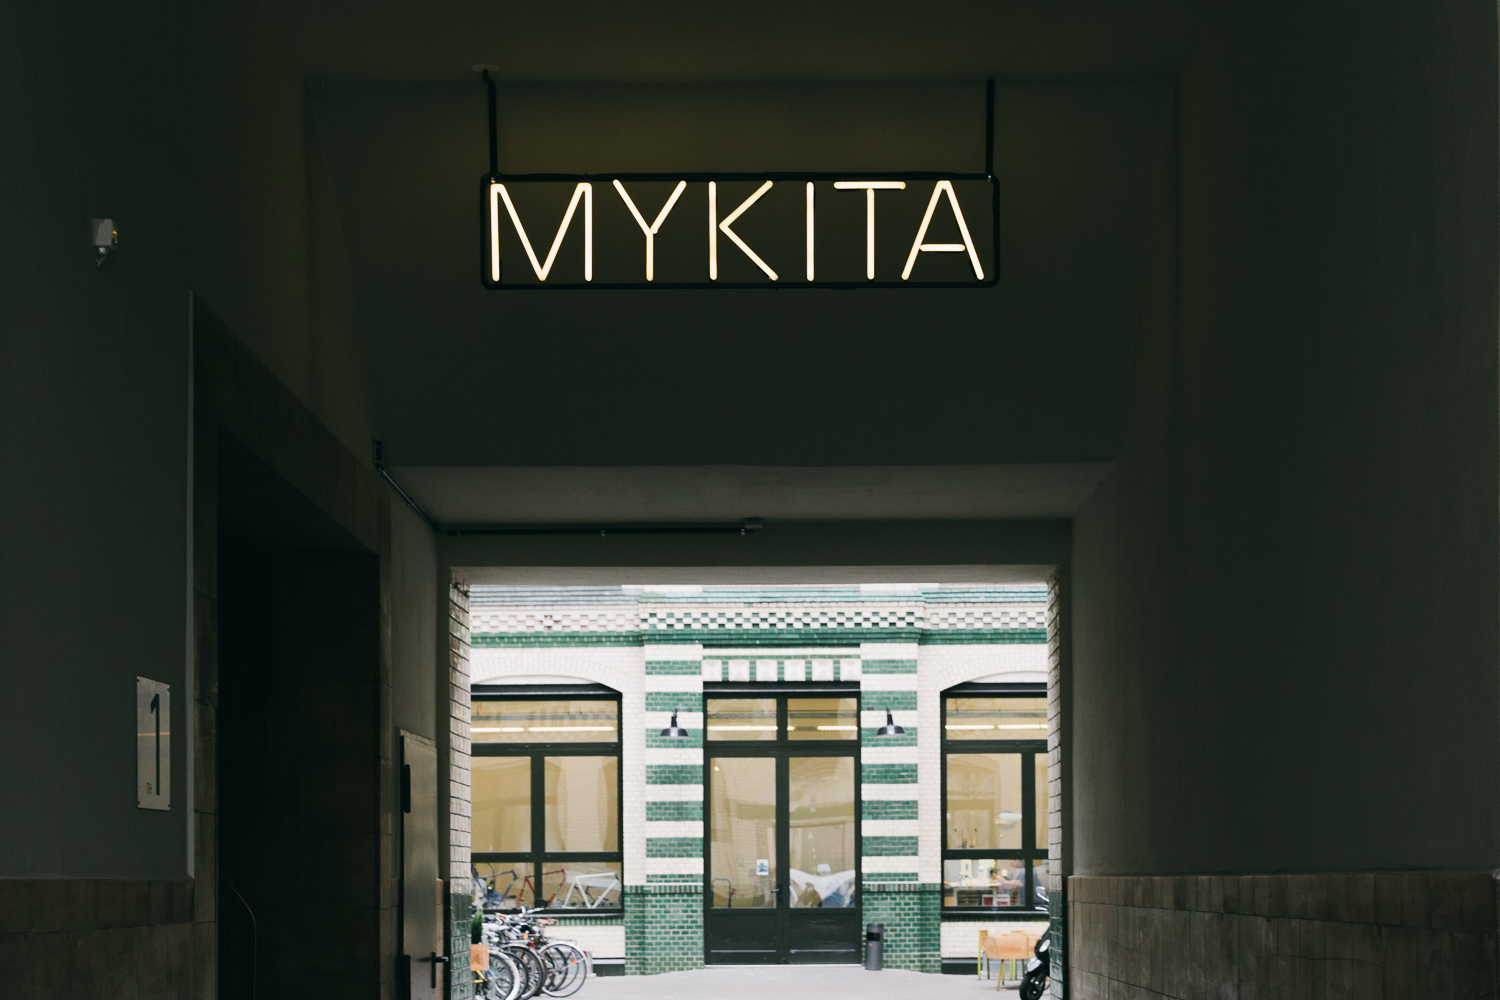 MYKITA High Snobiety